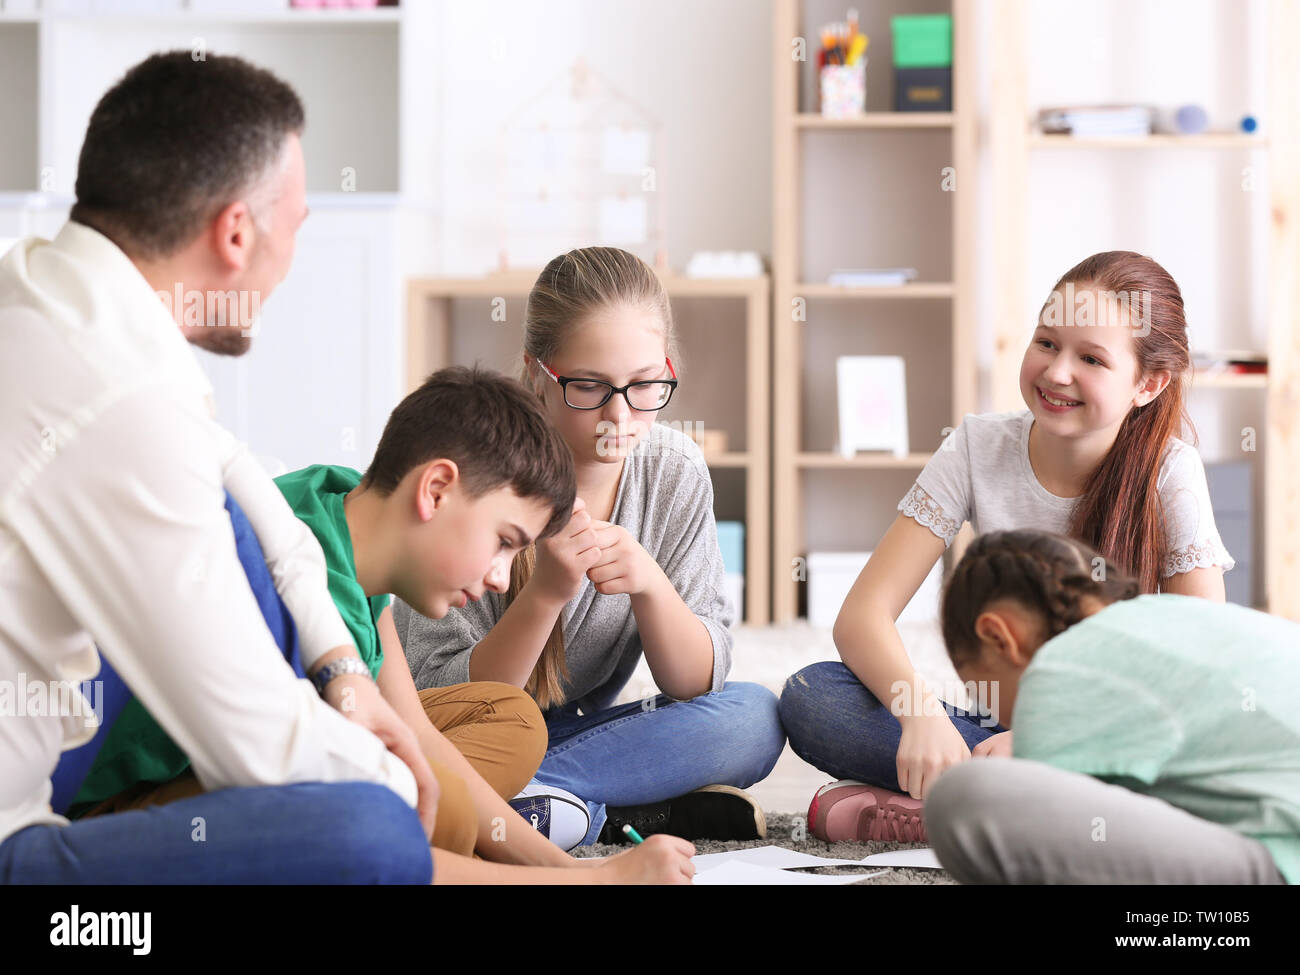 Male teacher conducting lesson at school - Stock Image